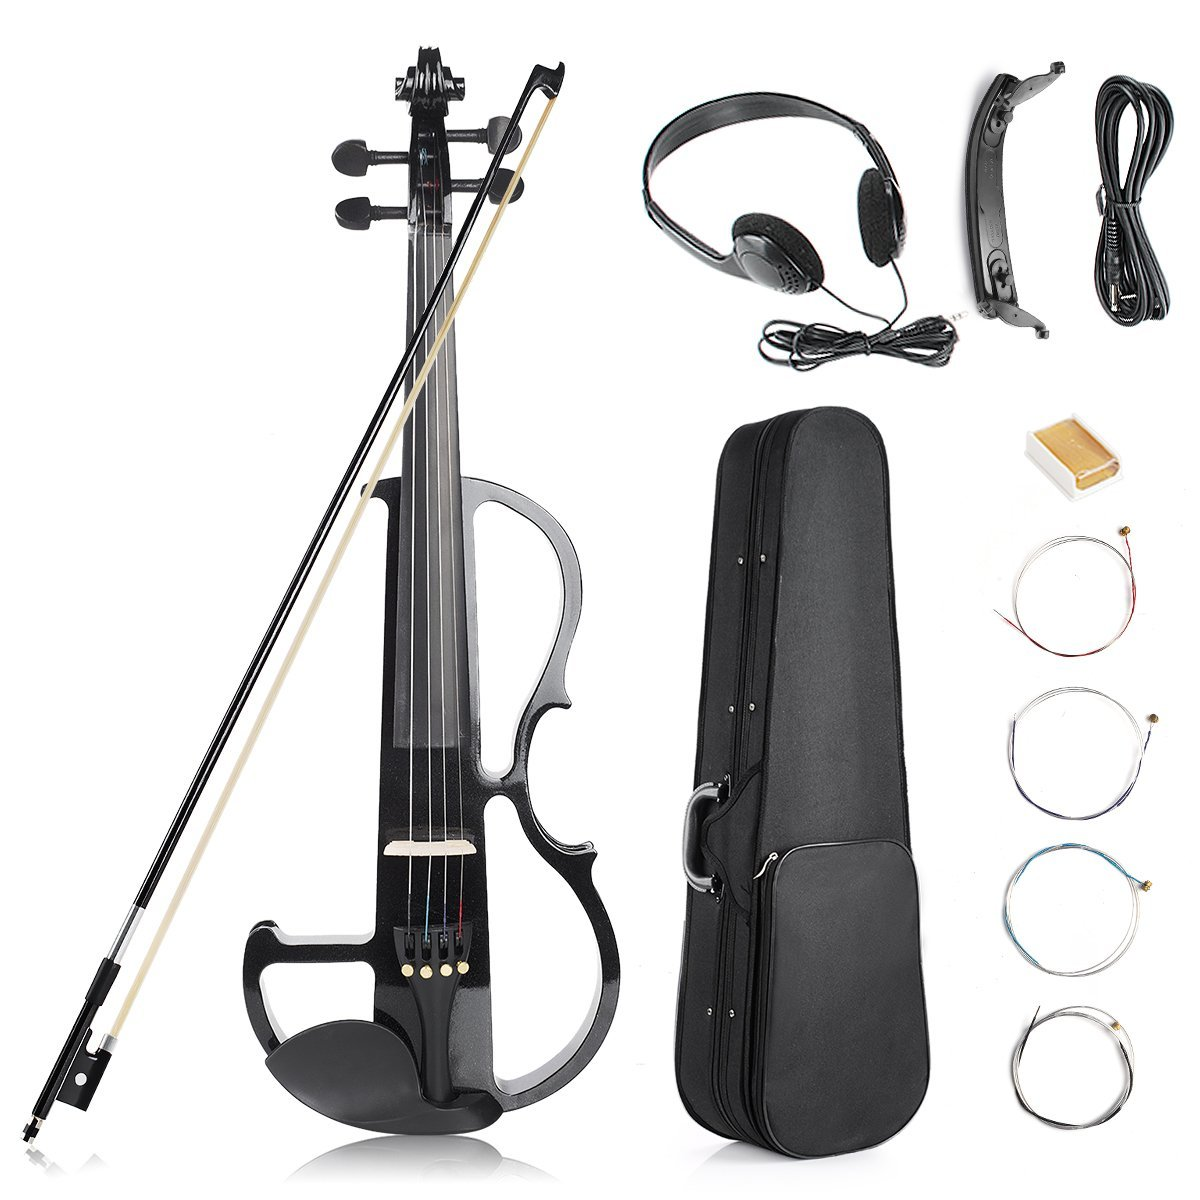 Vangoa - Black Full Size 4/4 Solid Wood Metallic Electronic Silent Mahogany Violin with Ebony Fittings, Carrying Case, Audio Cable, Rosin, Bow